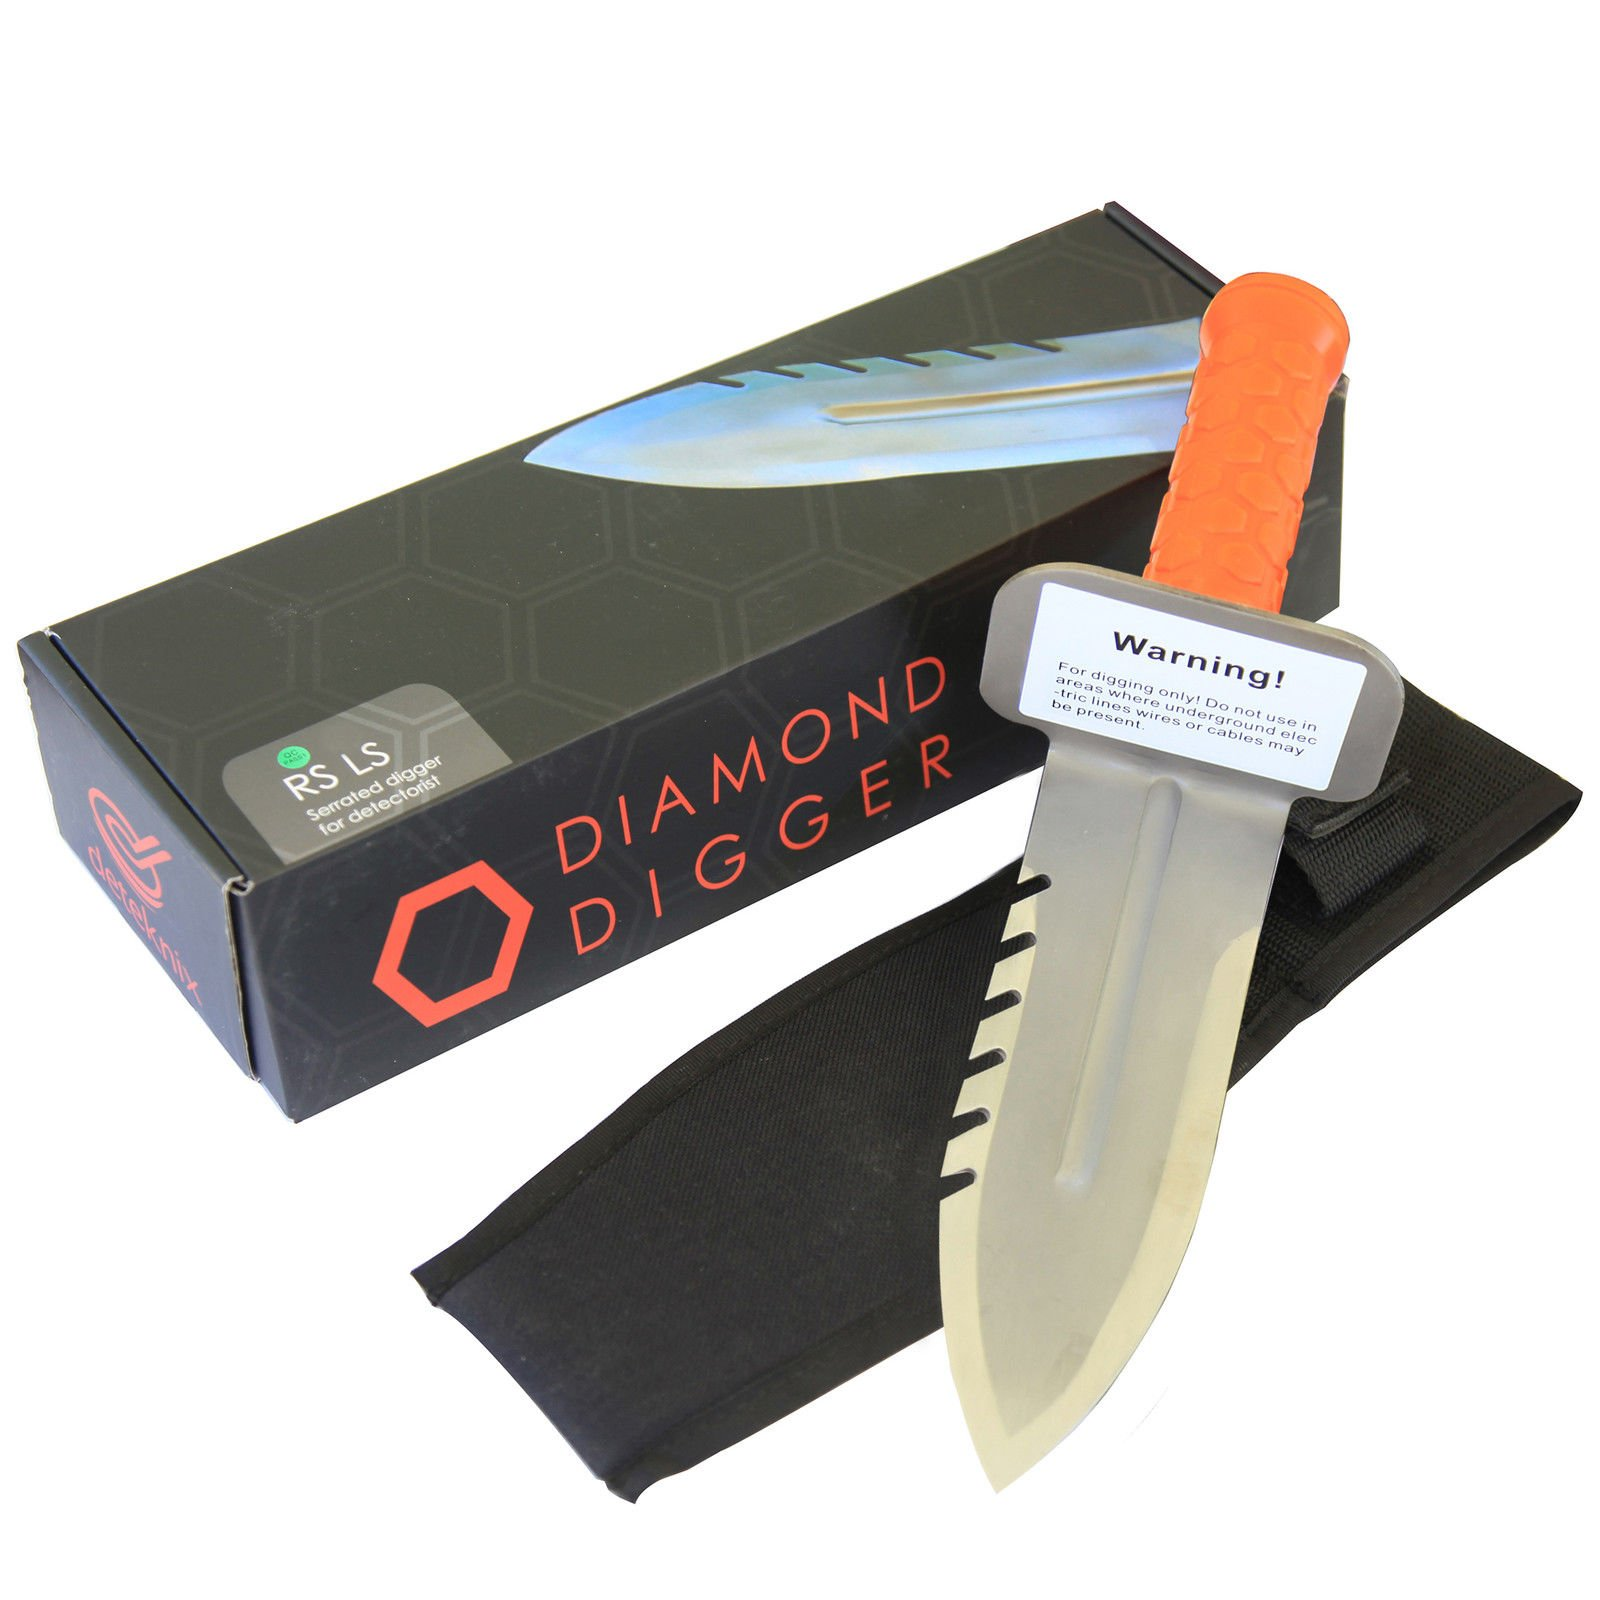 Deteknix 1V_1503.102 Quest Diamond Digger Right Side Serrated Digging Tool w/Sheath, Orange